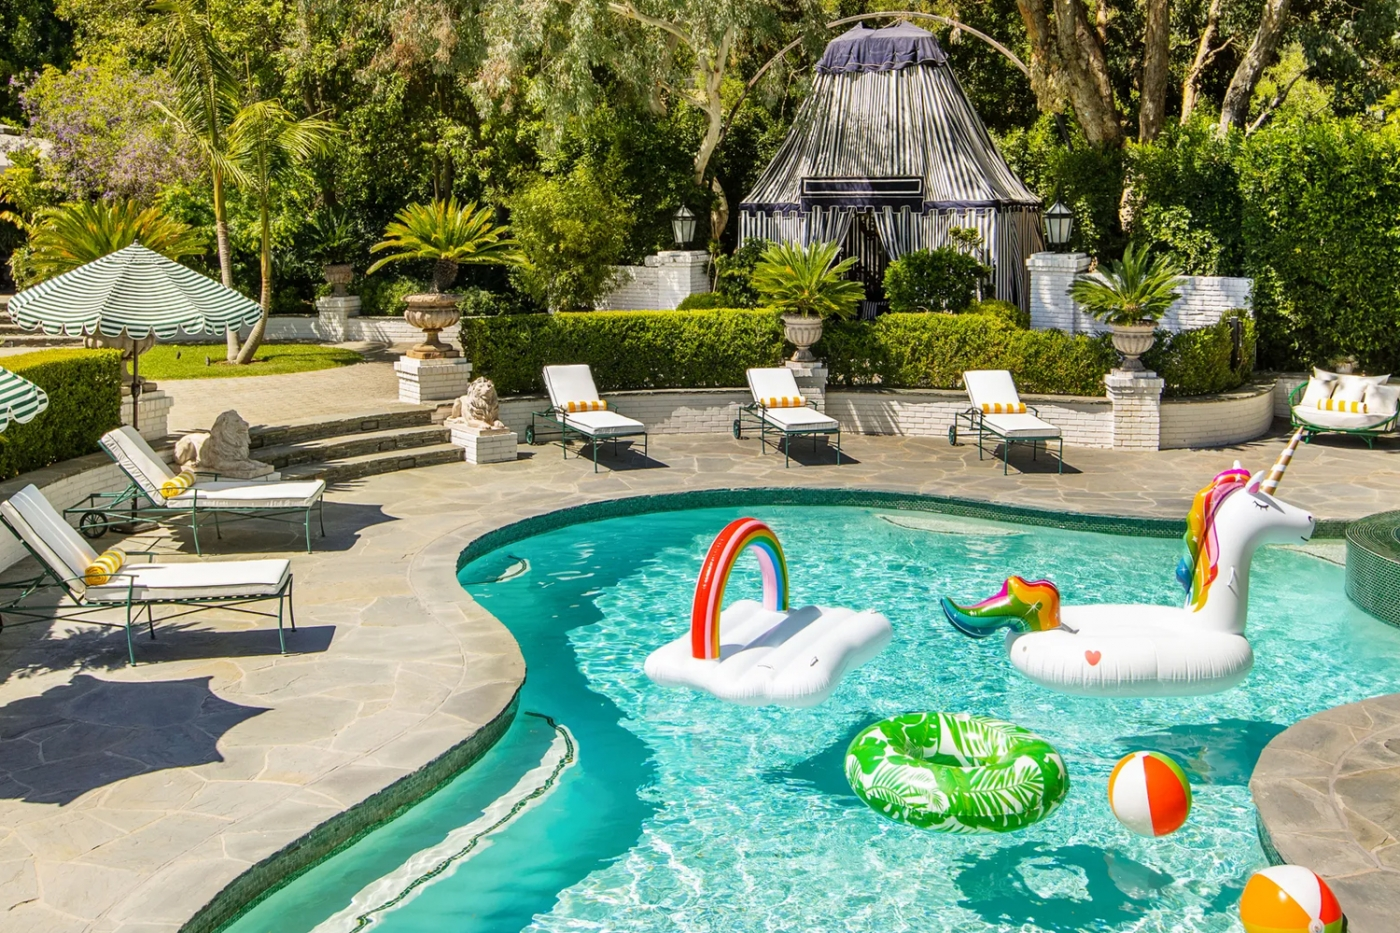 Cara Delevingne's Retreat In Los Angeles Takes Us To Wonderland cara delevingne Cara Delevingne's Retreat In Los Angeles Takes Us To Wonderland featured cara 1400x933